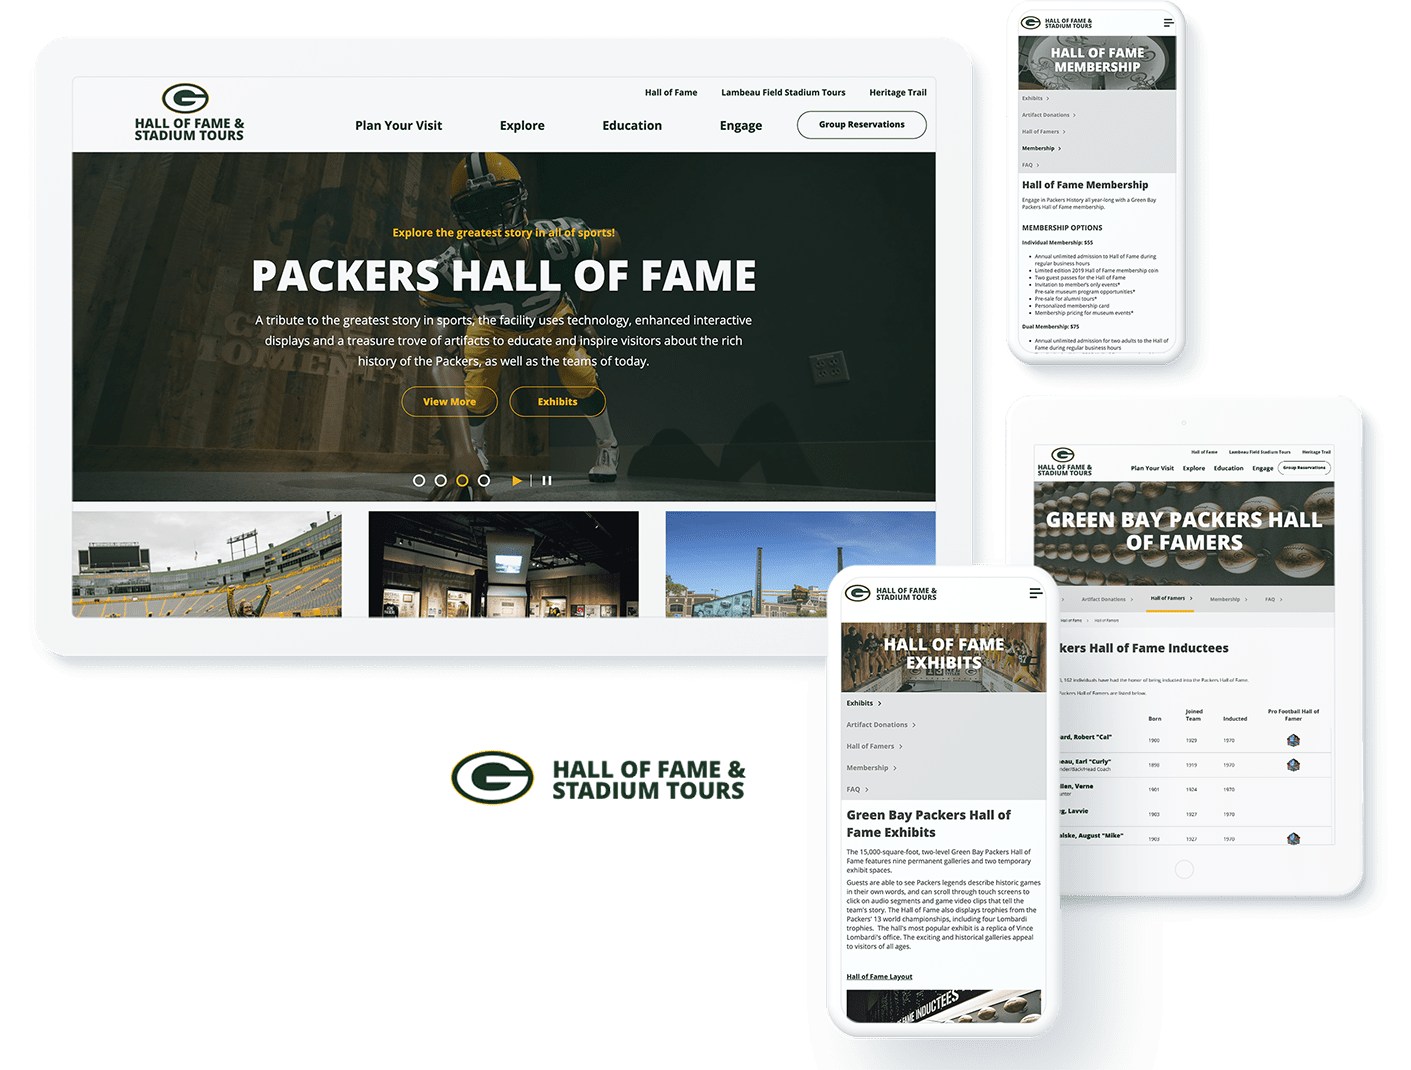 GB Packers Hall of Fame